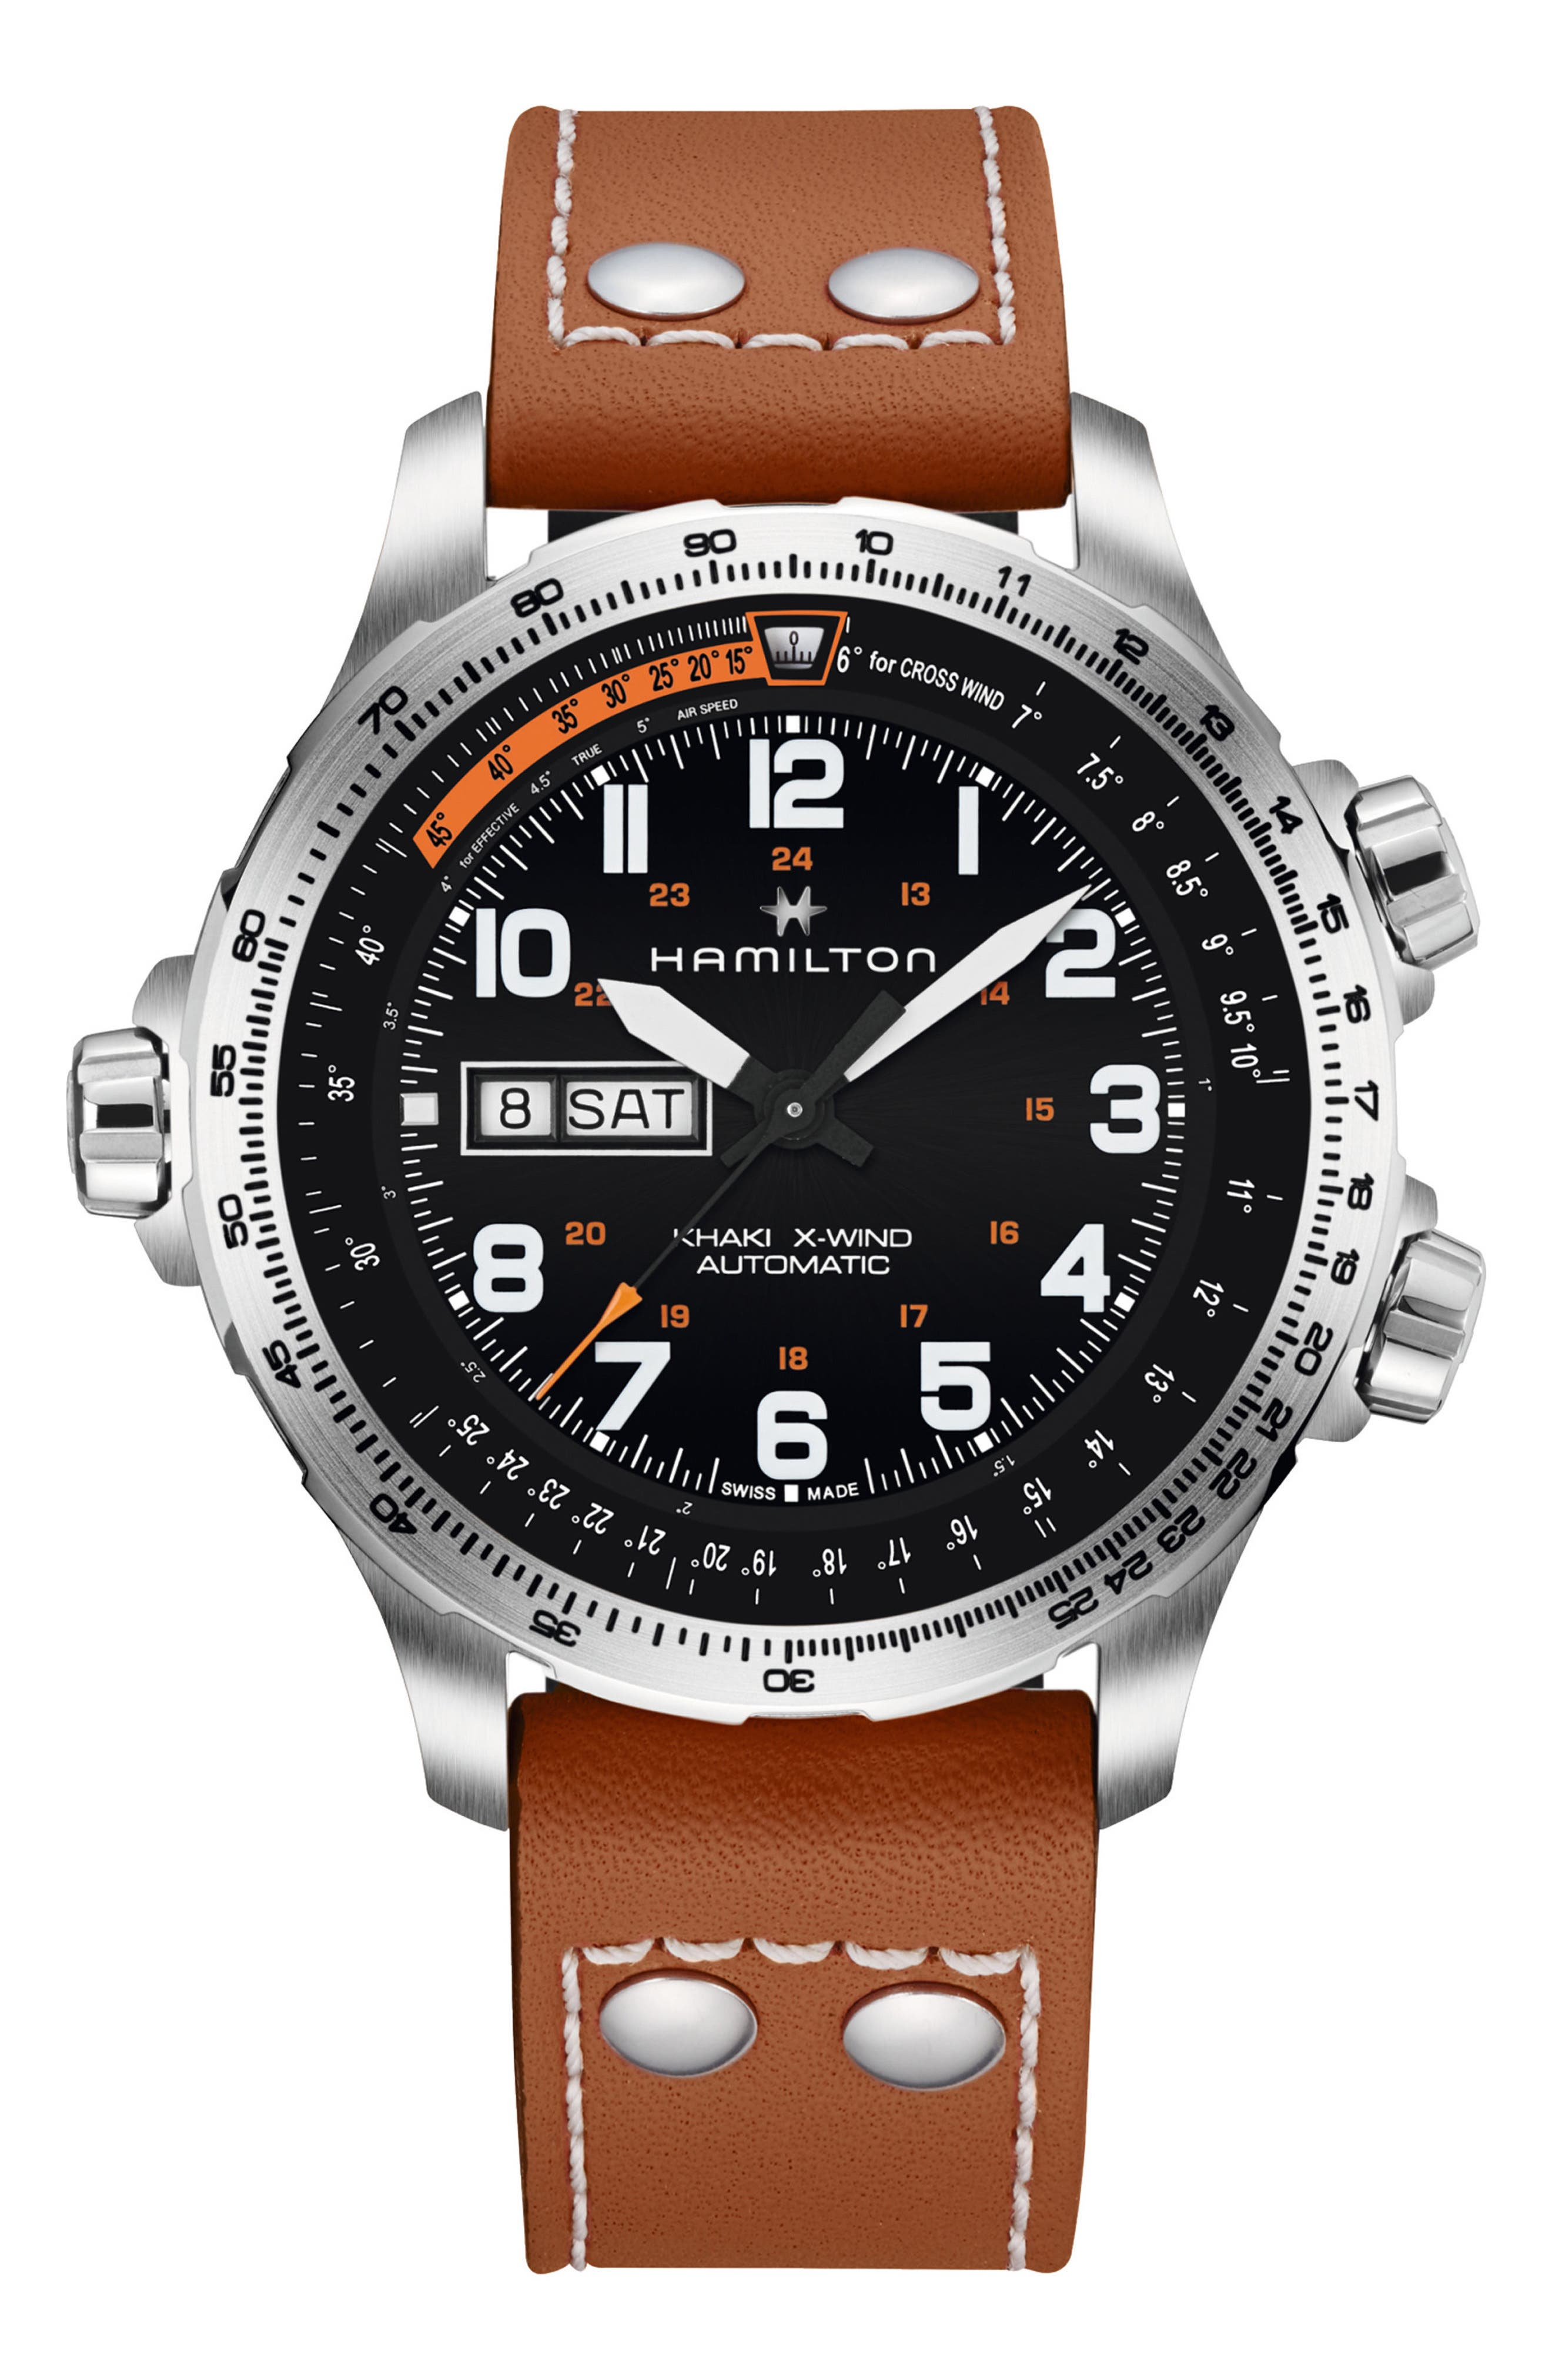 Khaki X-Wind Automatic Chronograph Leather Strap Watch, 45mm,                         Main,                         color, LIGHT BROWN/ BLACK/ SILVER